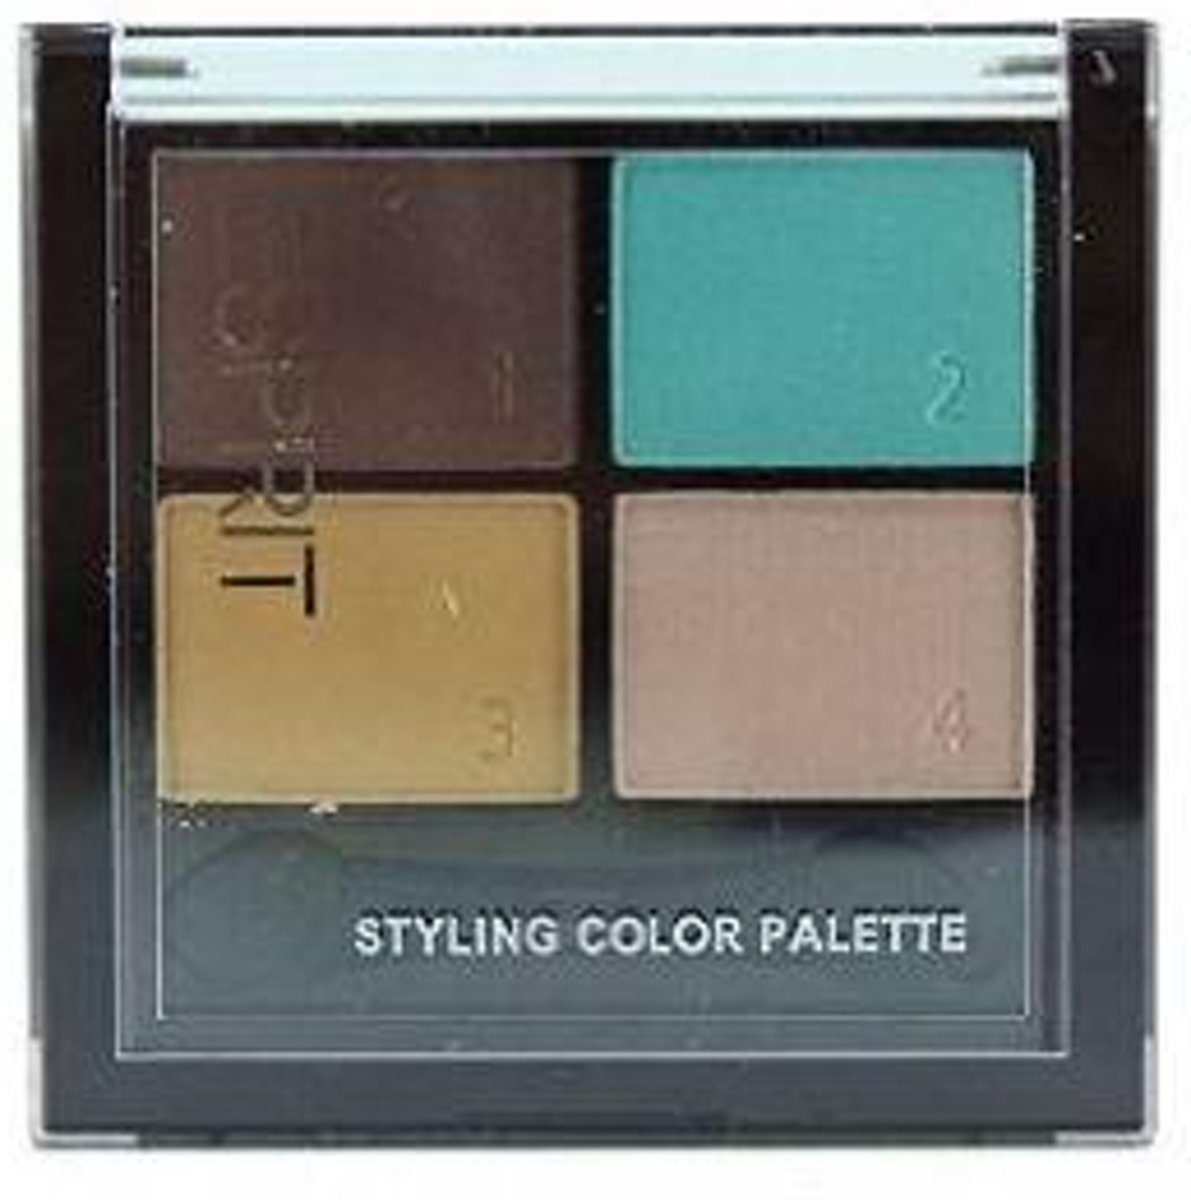 Styling Color Palette